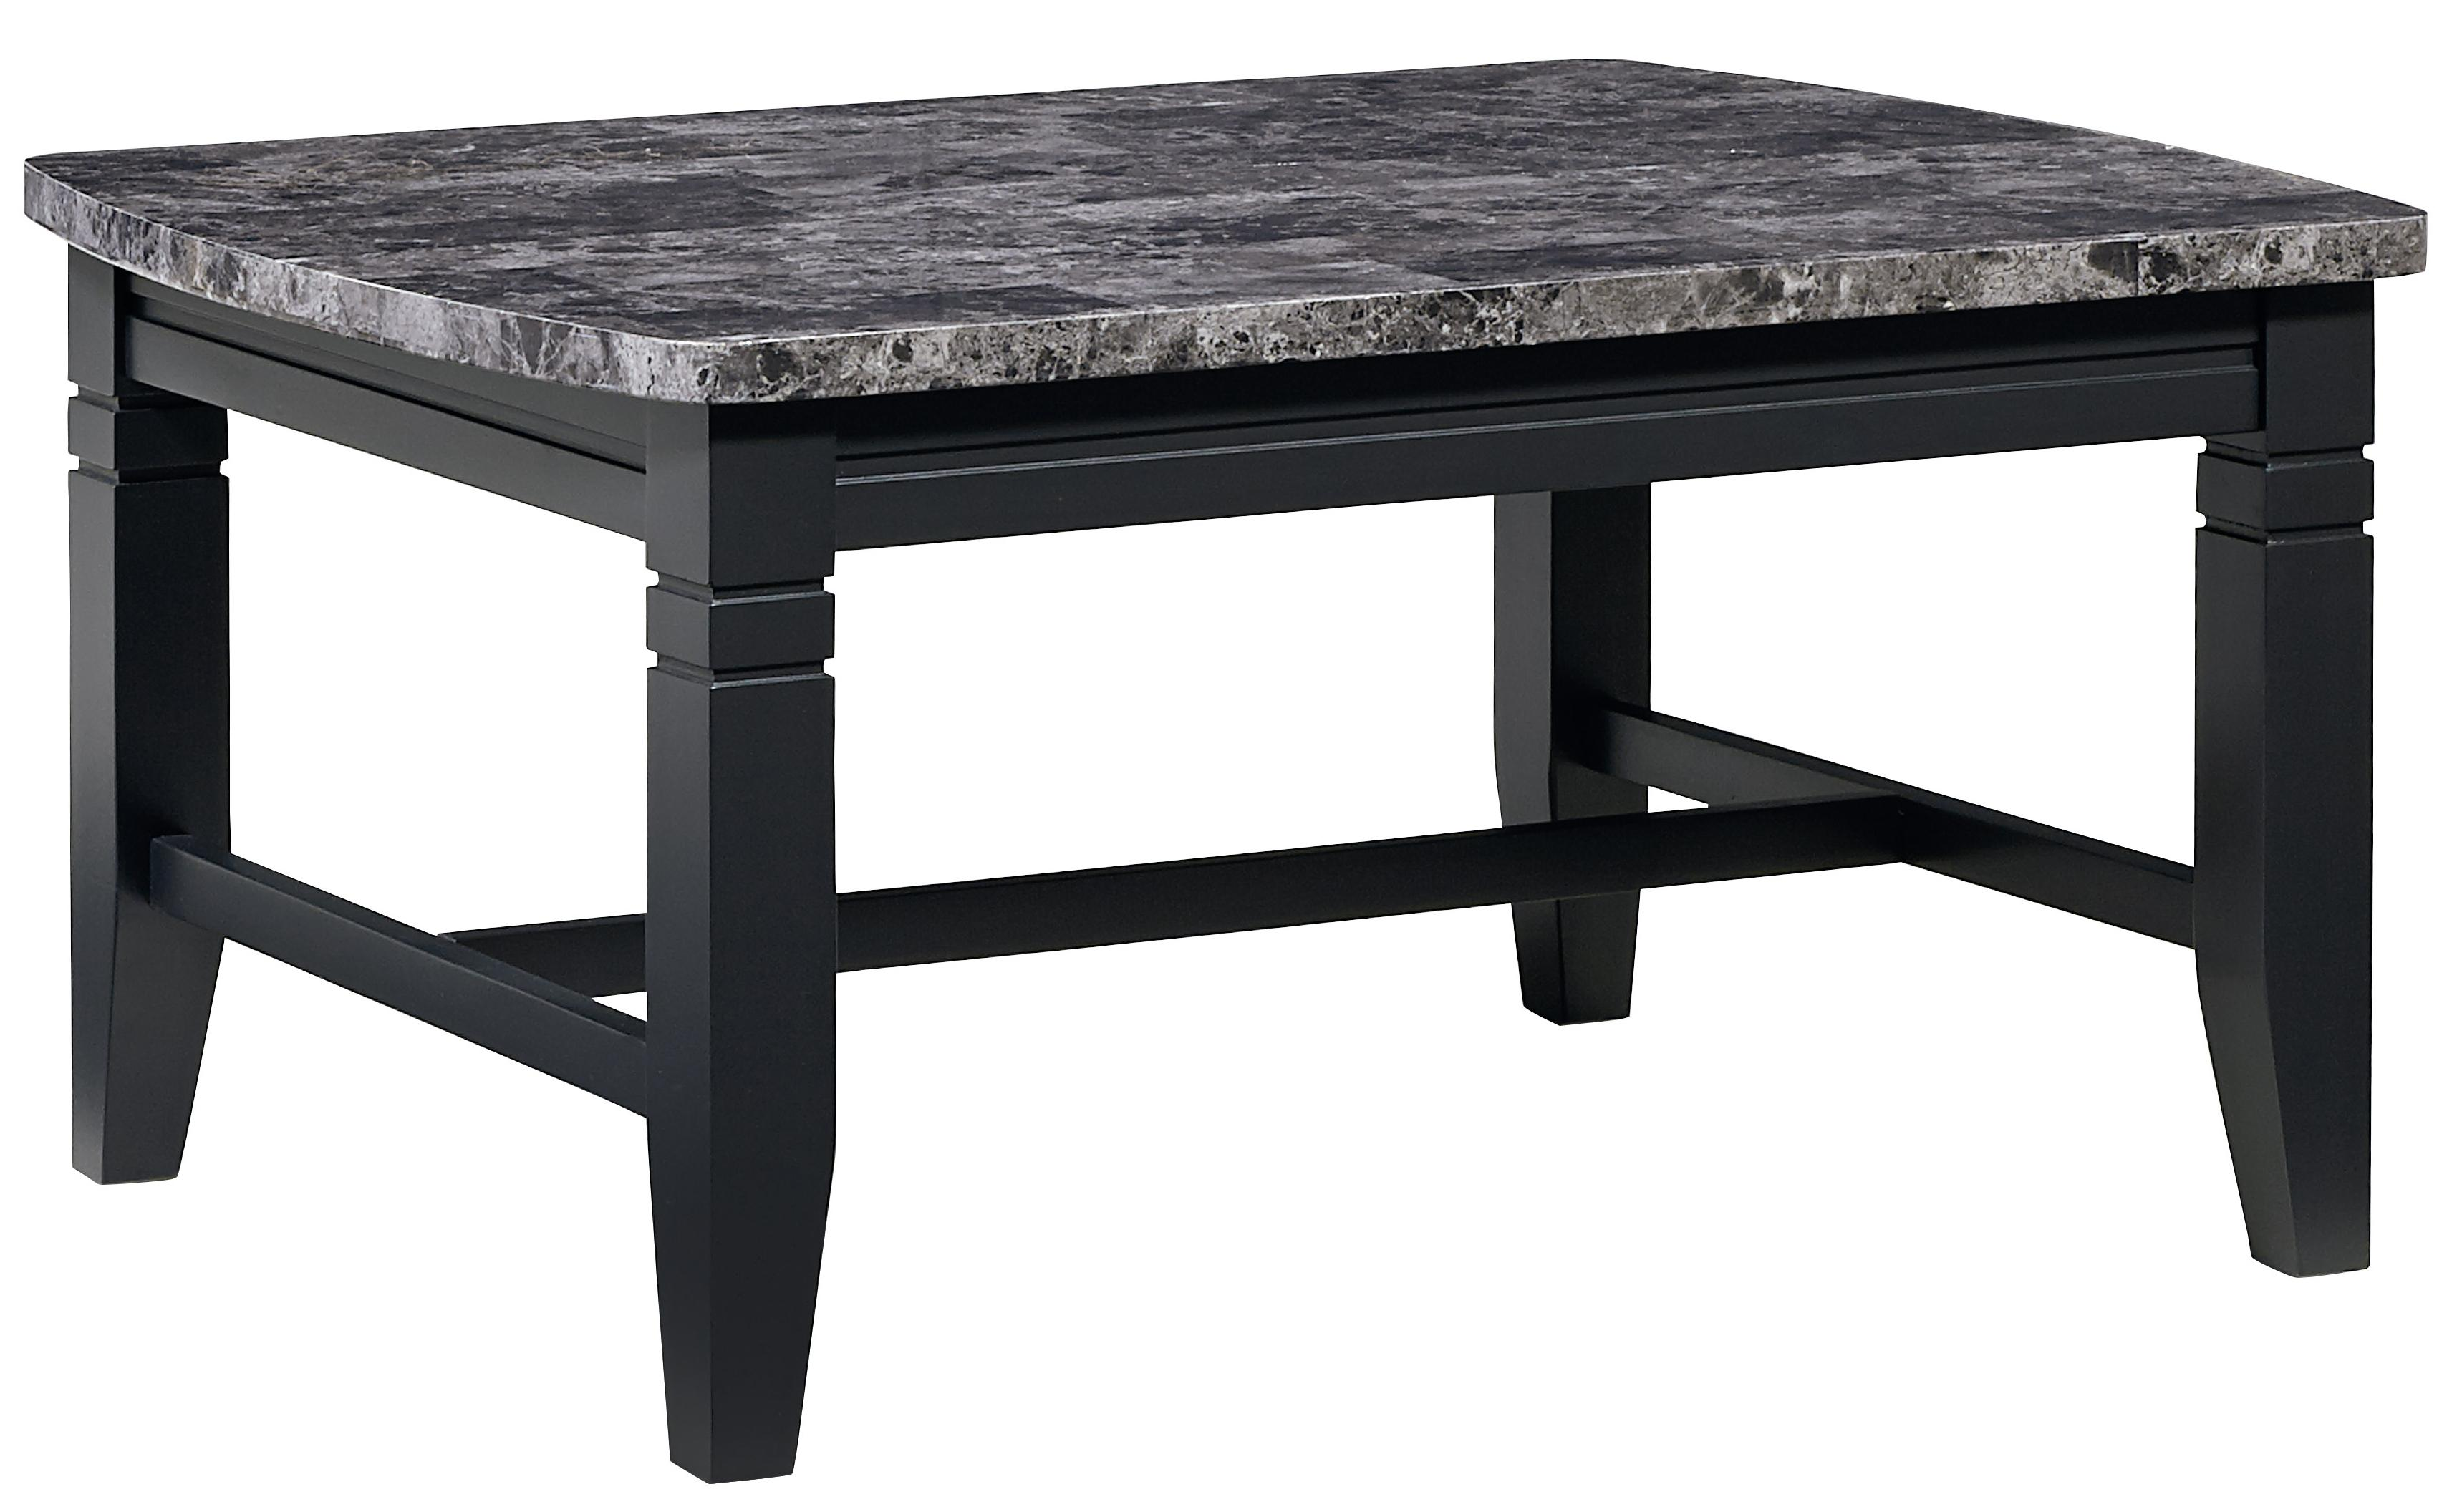 3 Piece Occasional Table Set With Faux Marble Tops By